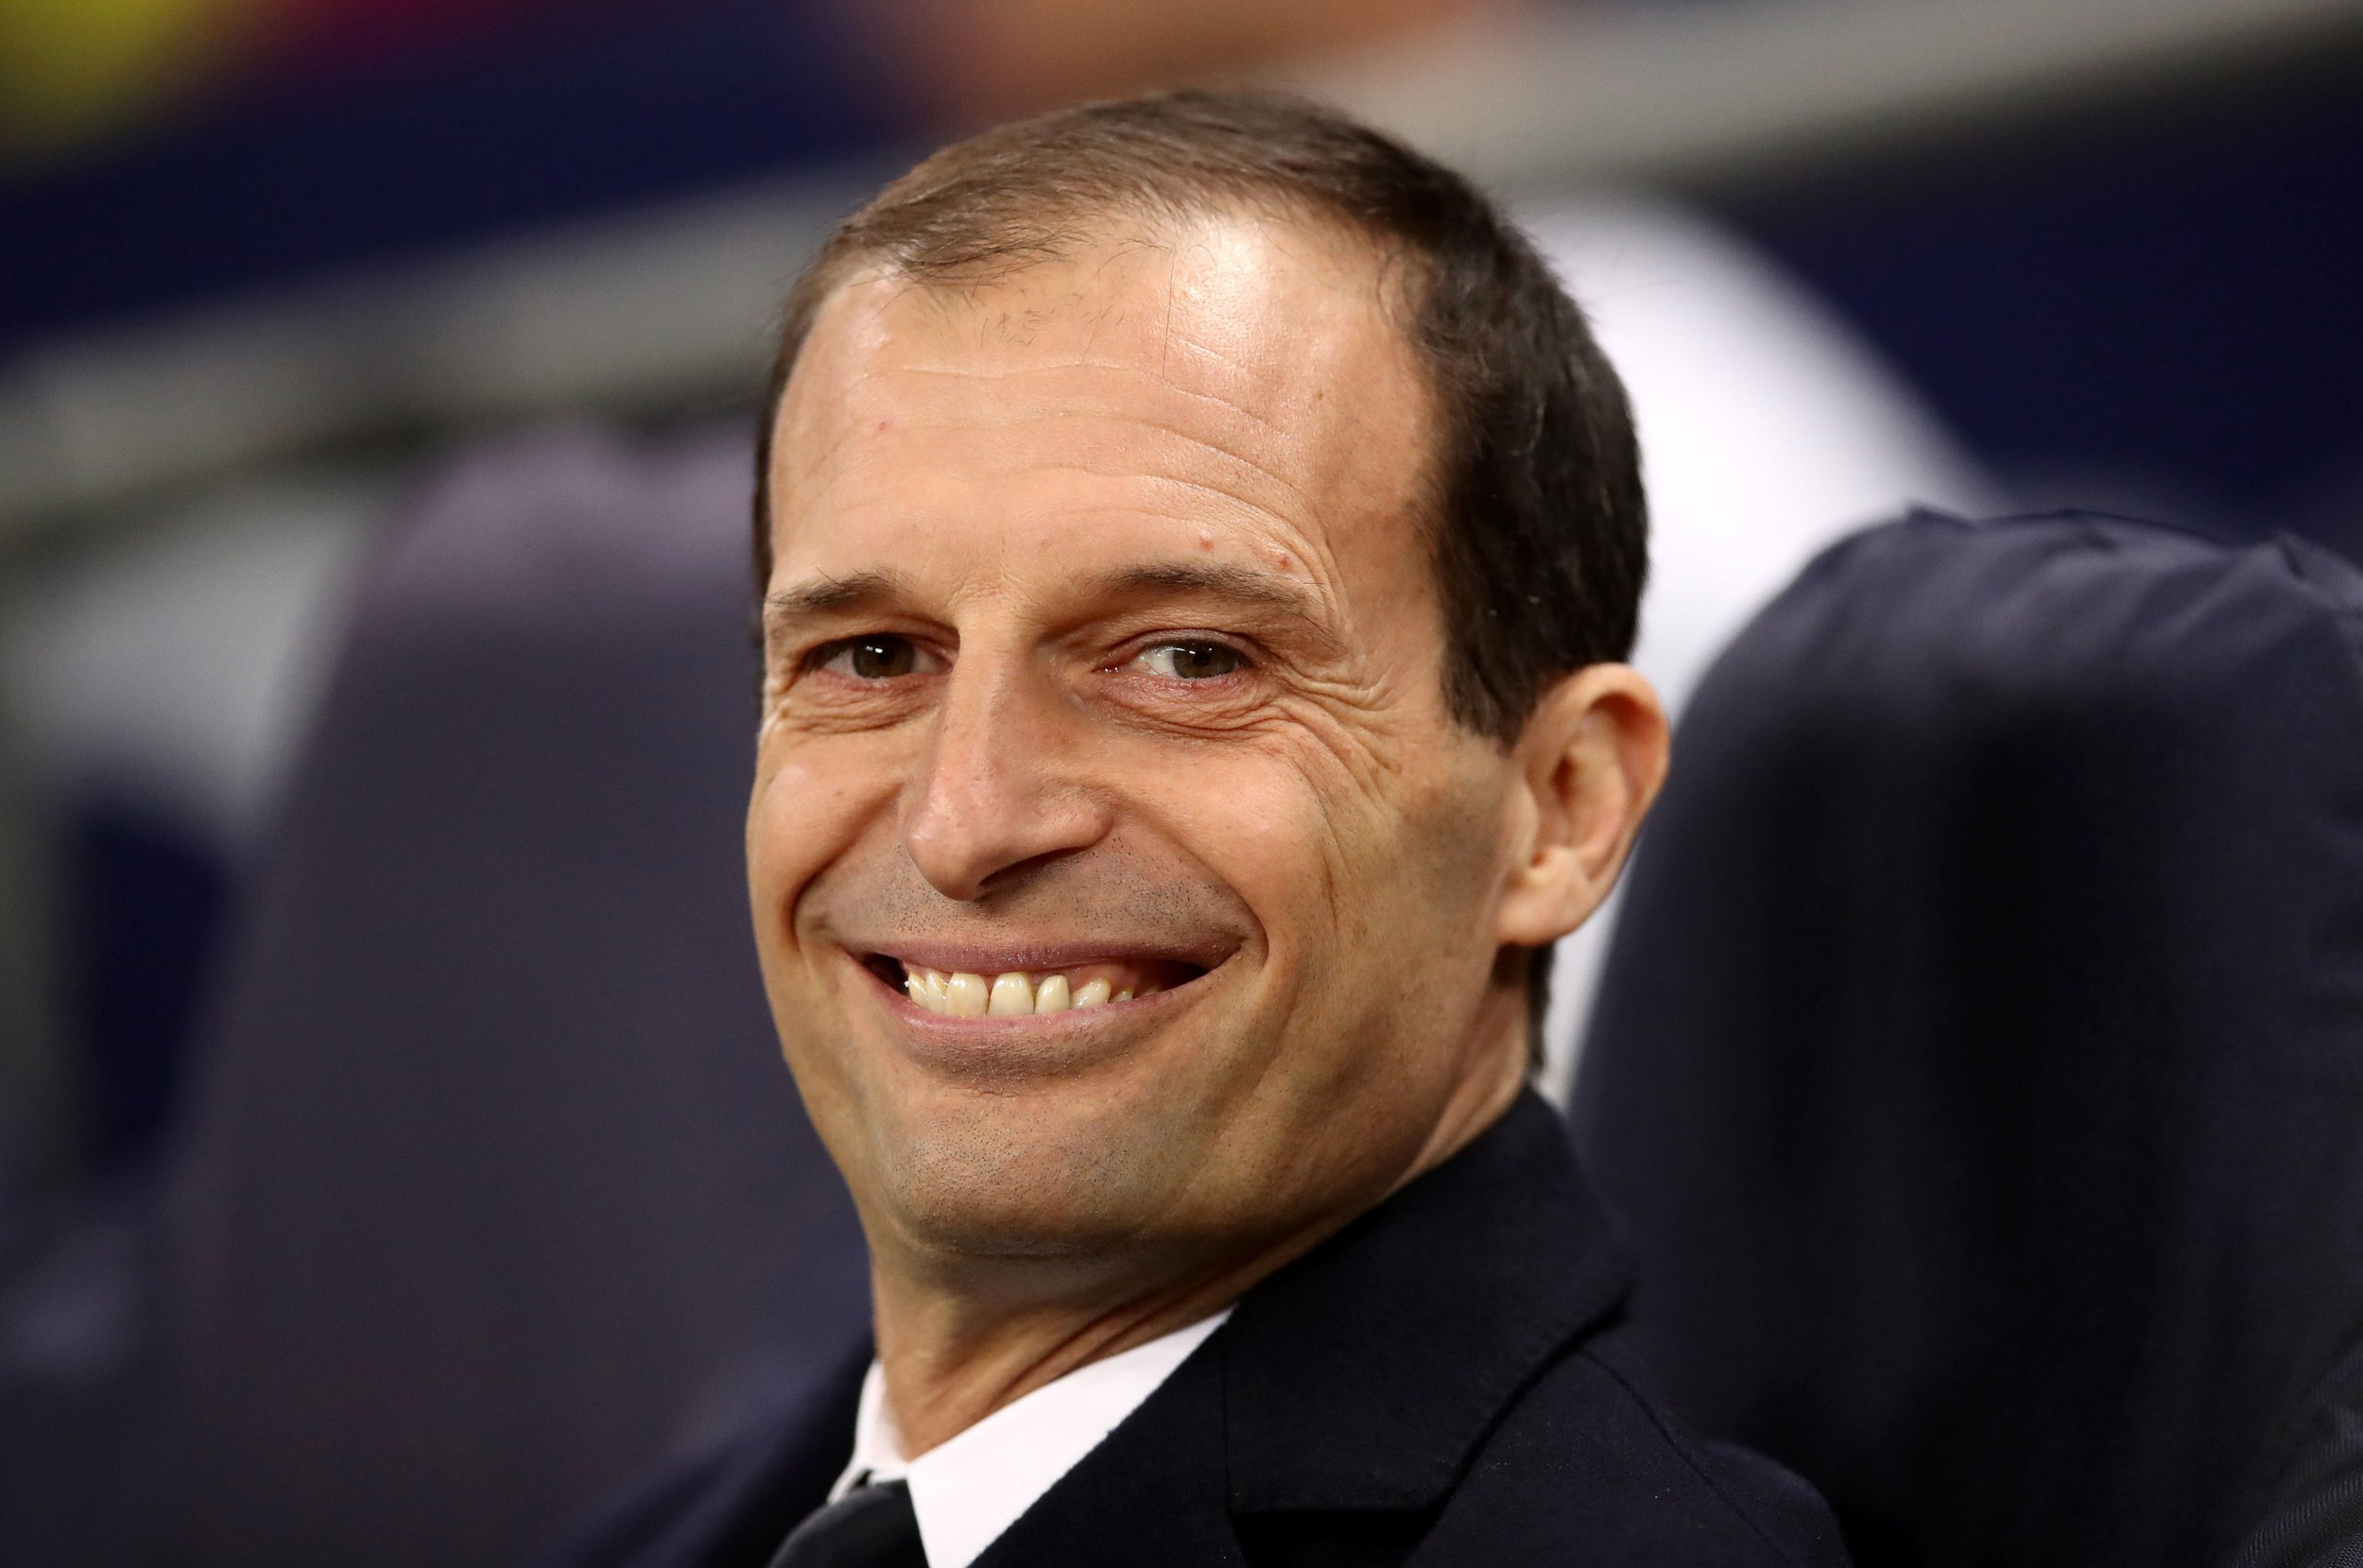 Why Massimiliano Allegri is Ivan Gazidis' top choice to replace Arsene Wenger at Arsenal